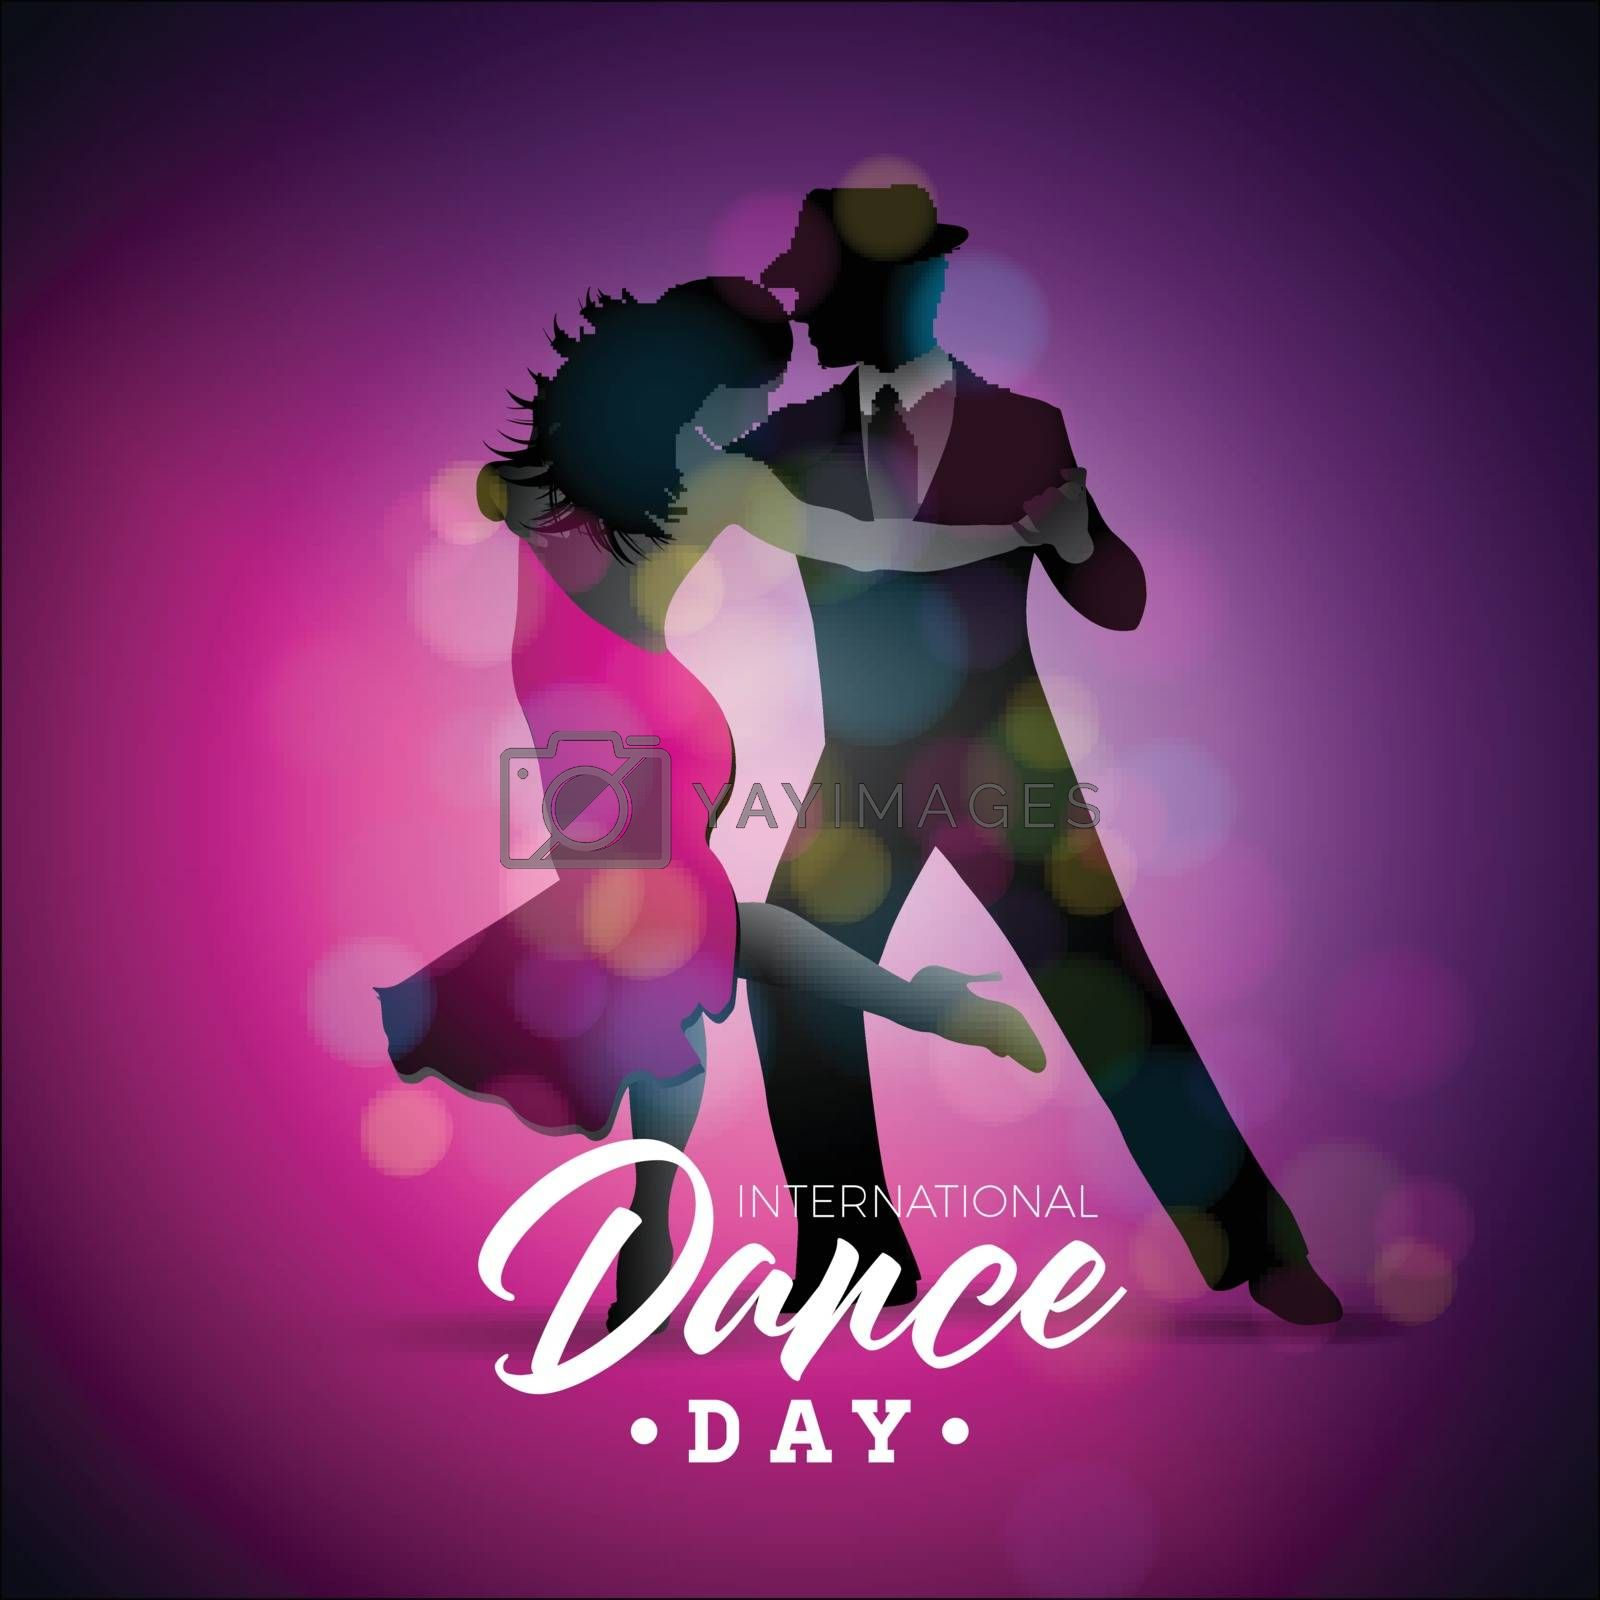 International Dance Day Vector Illustration With Tango Dancing Couple On Purple Background Design Template For Banner Flyer Invitation Brochure Poster Or Greeting Card Royalty Free Stock Image Yayimages Royalty Free